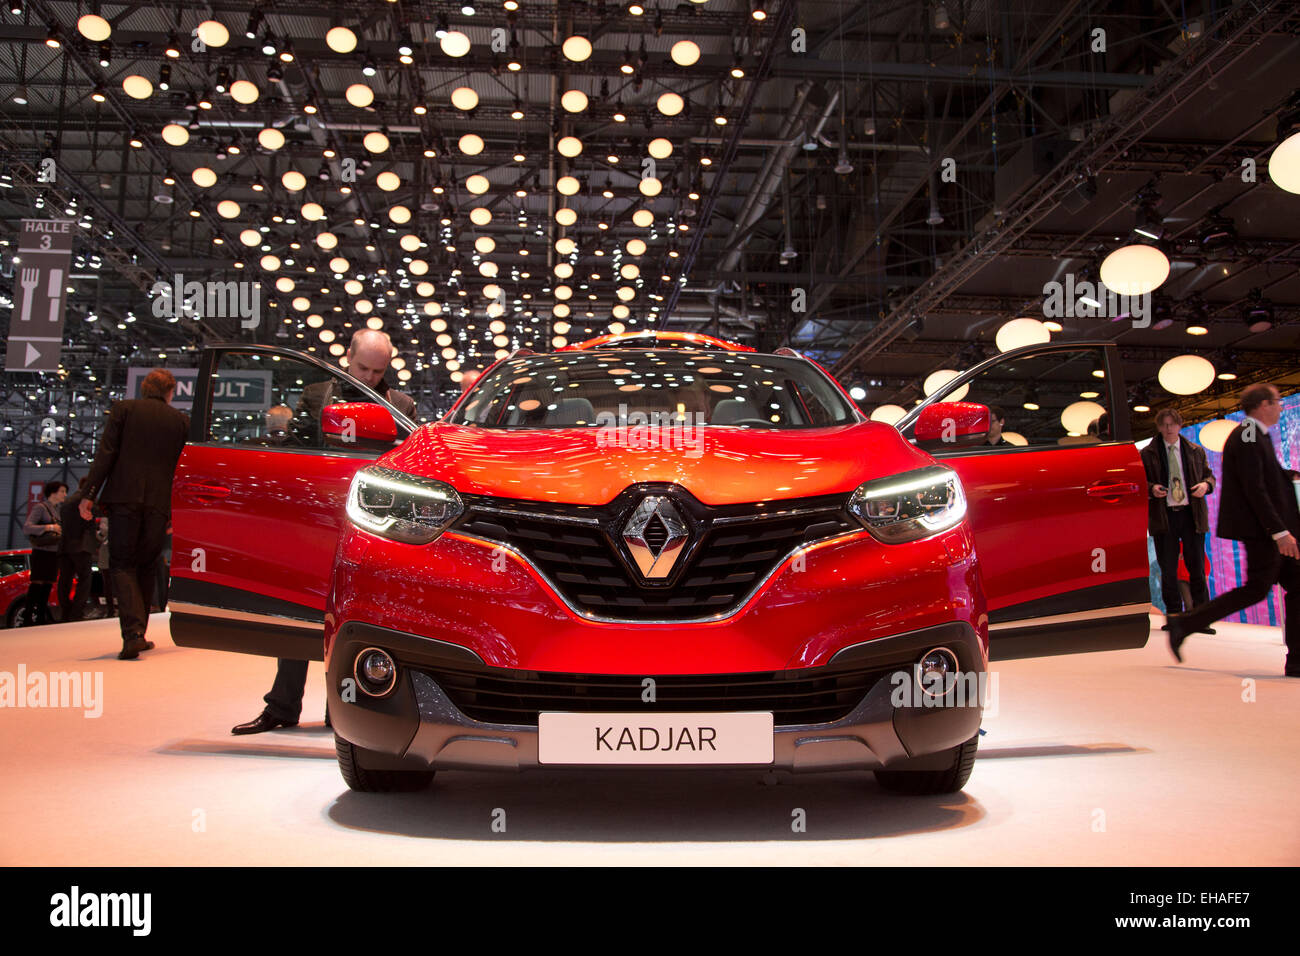 Renault Kadjar At The Geneva Motor Show 2015 Stock Photo Alamy